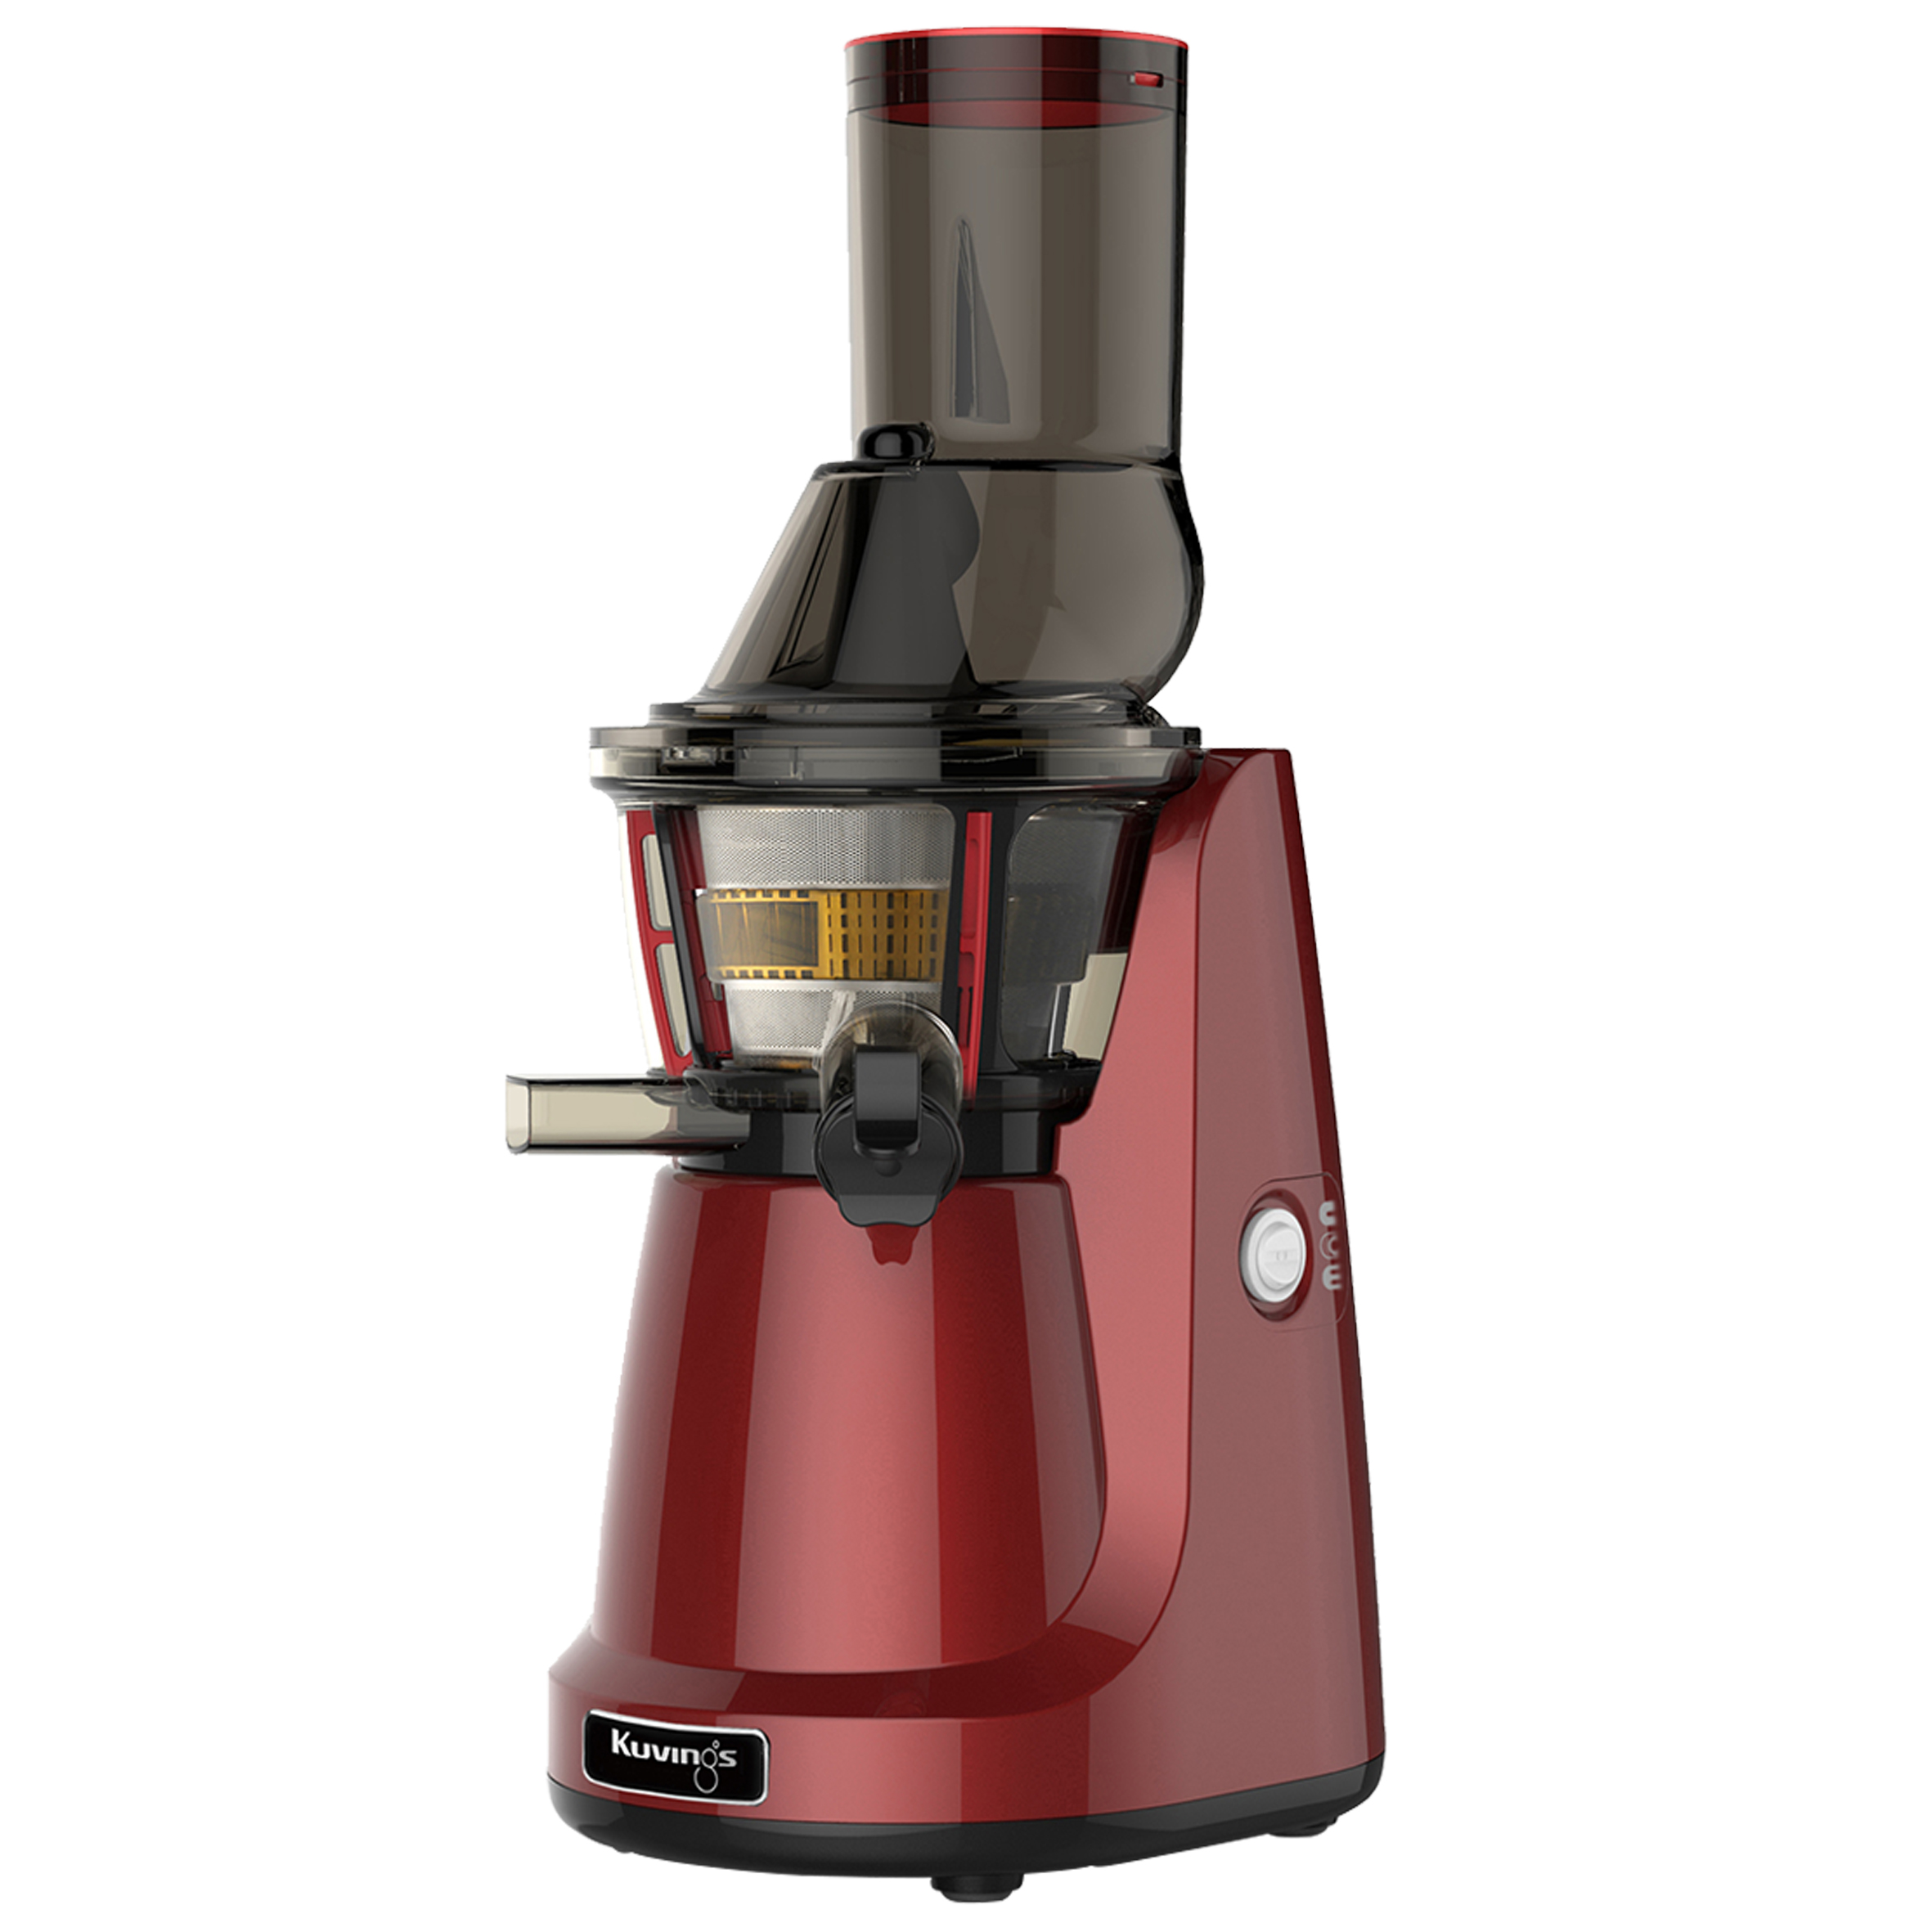 Kuvings 950sc Slow Juicer Reviews : Kuvings Whole Slow Juicer B3000 Reviews - ProductReview.com.au